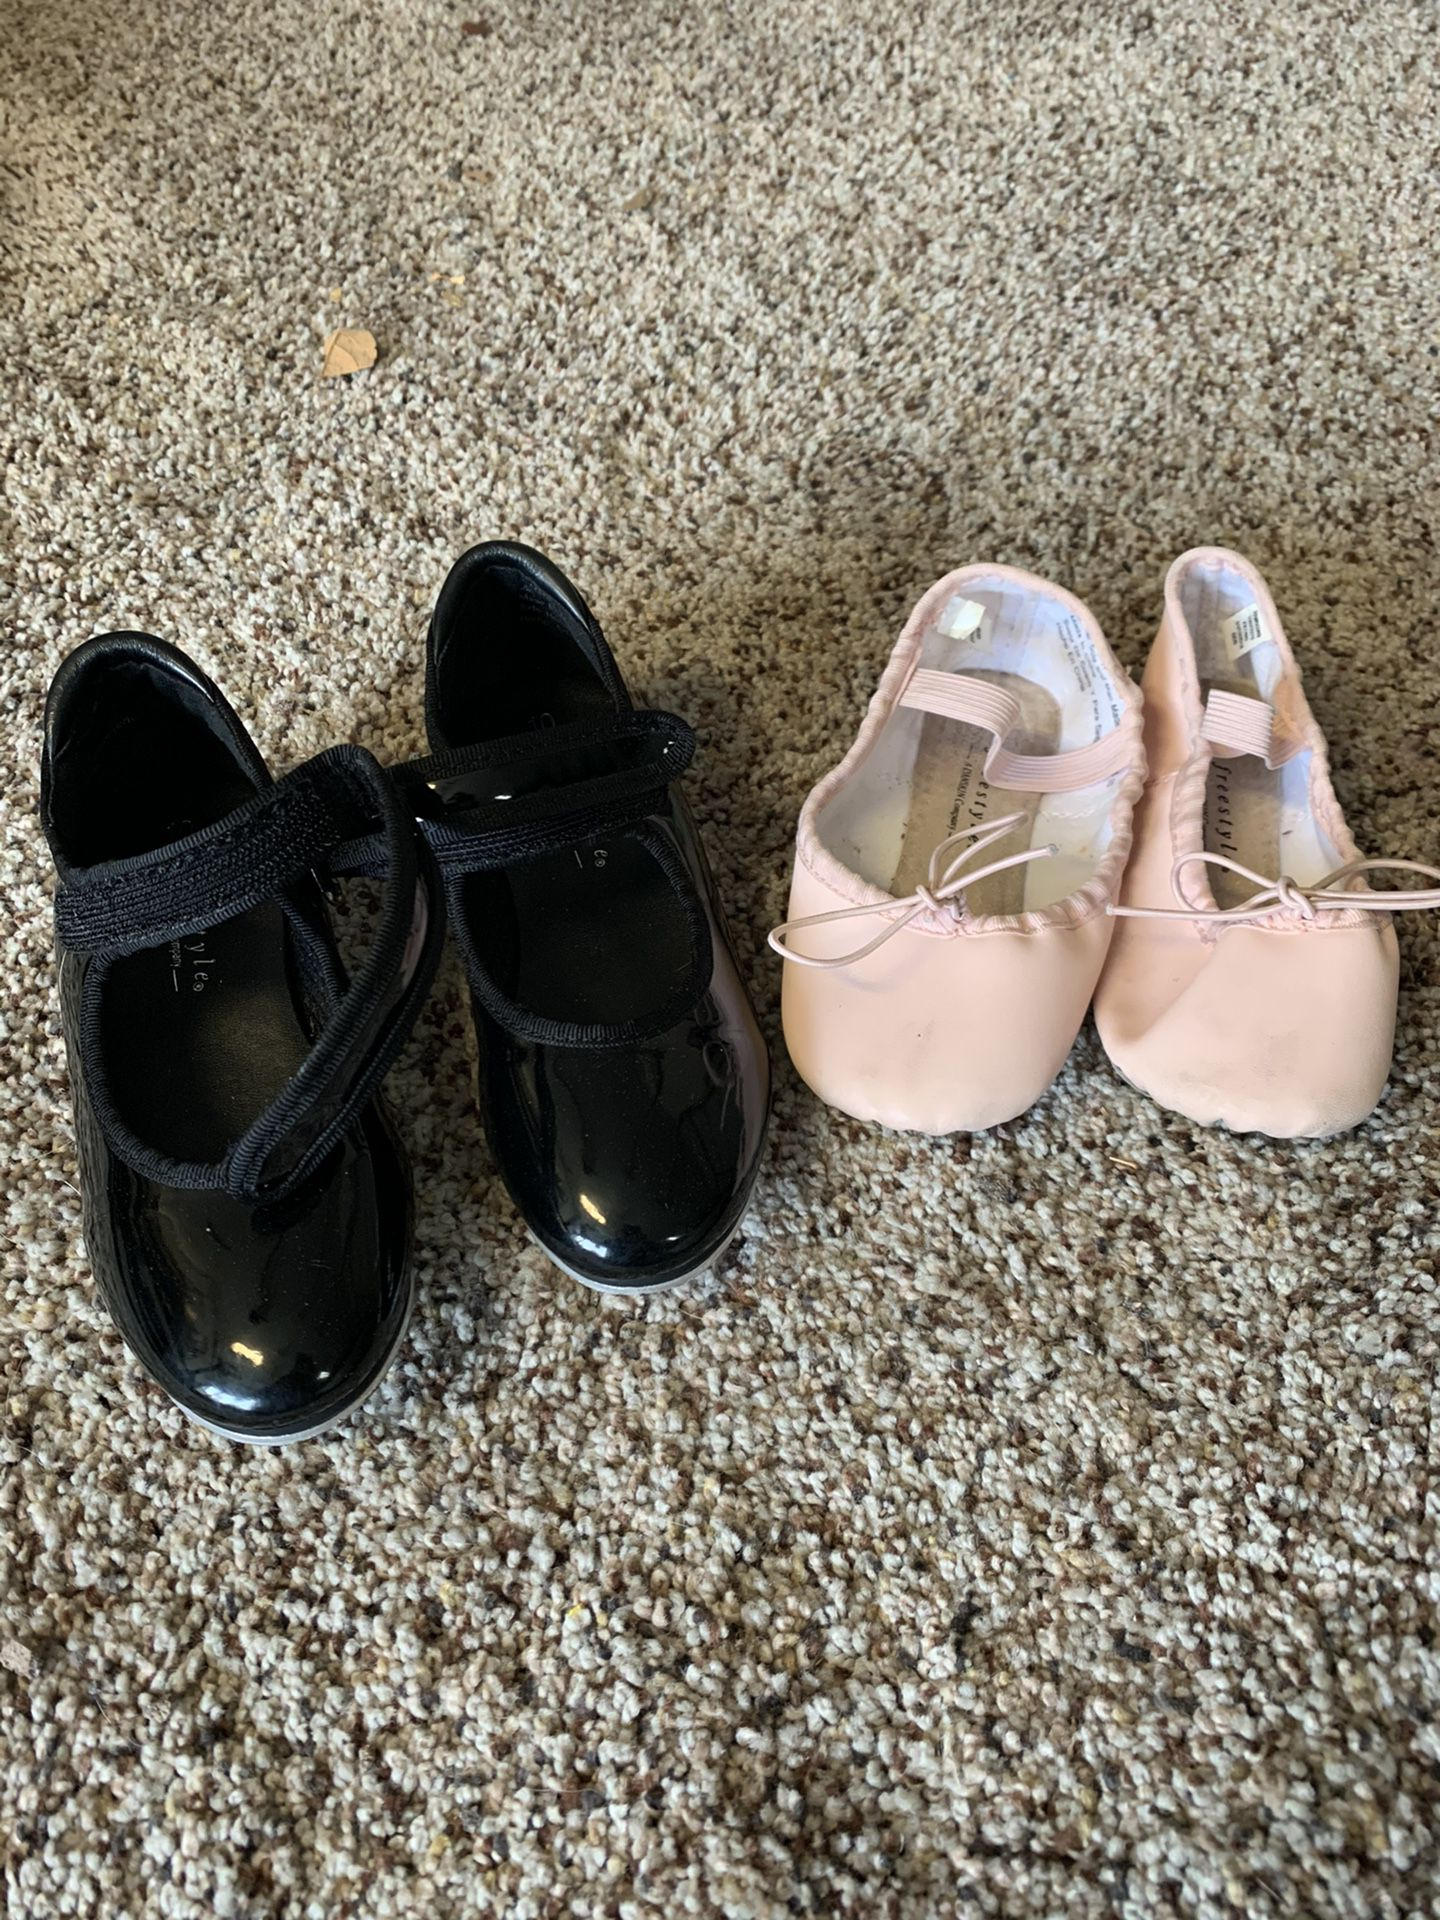 Toddler tap and ballet shoes